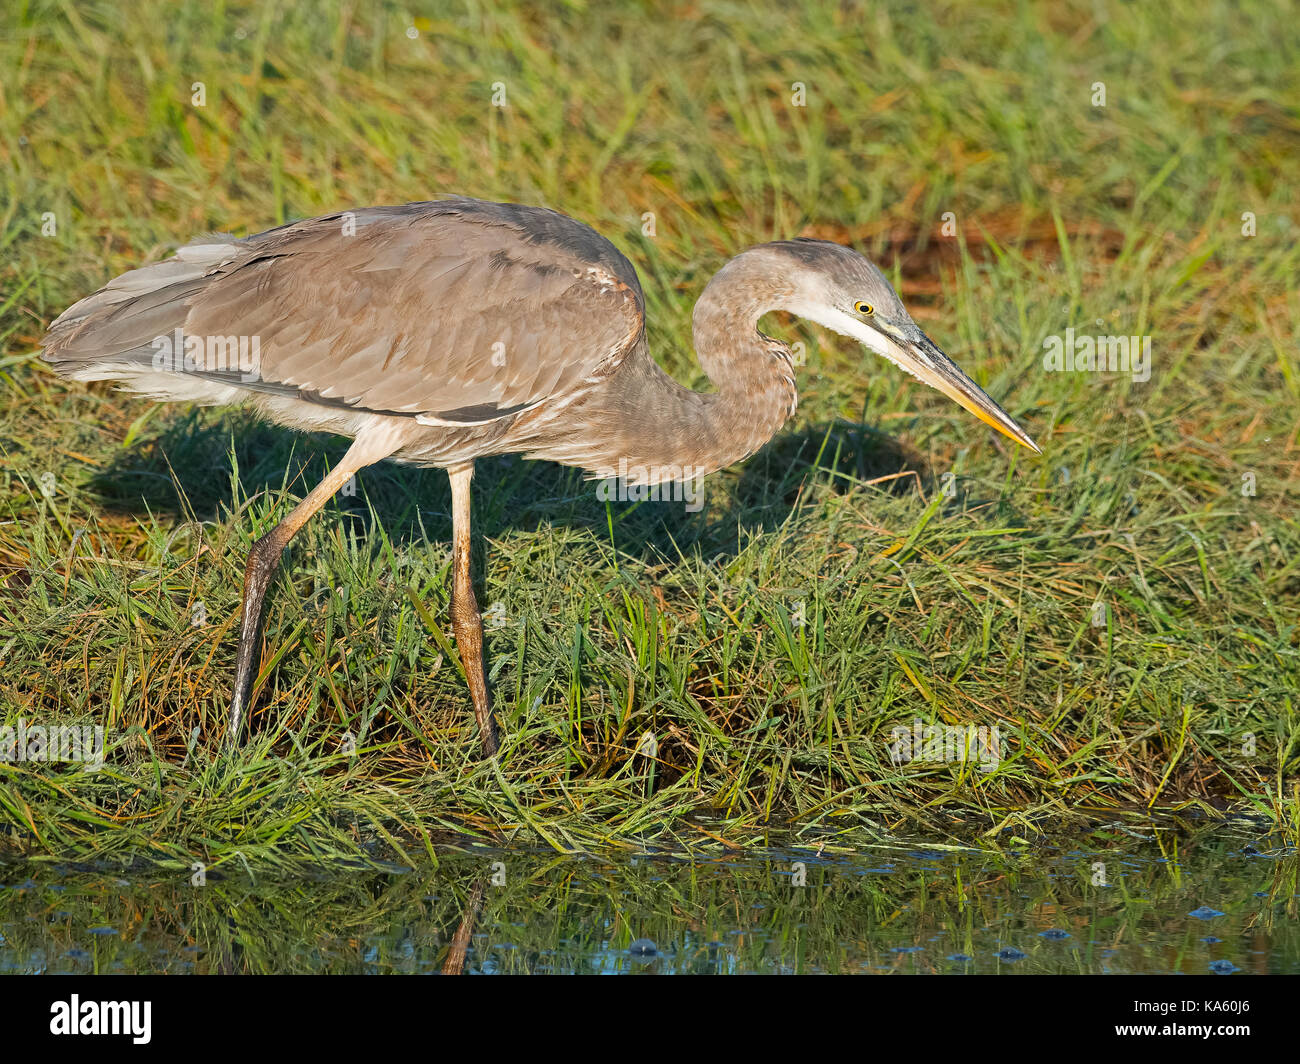 Great Blue Heron Hunting - Stock Image